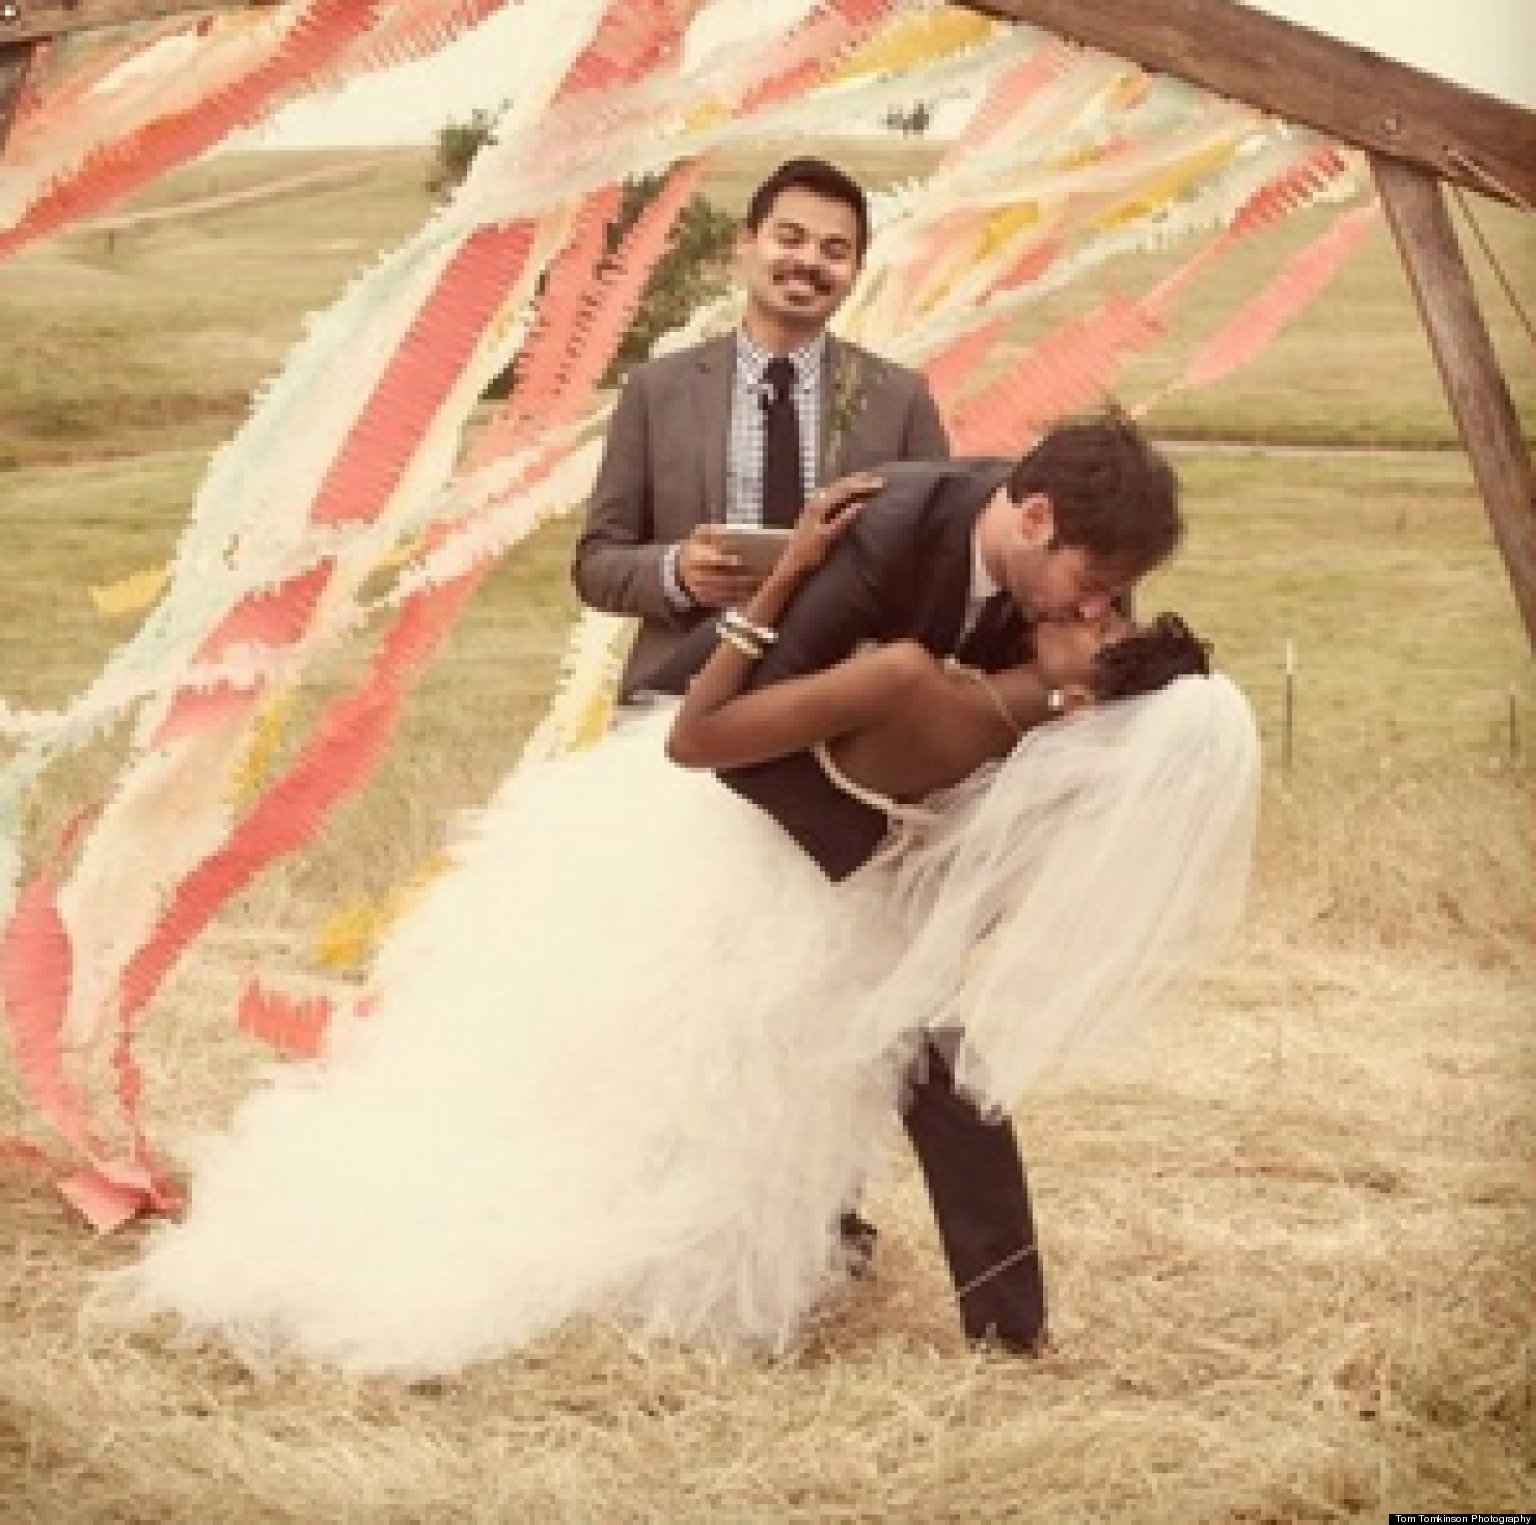 20 Adorable Wedding Moments That Will Brighten Your Day